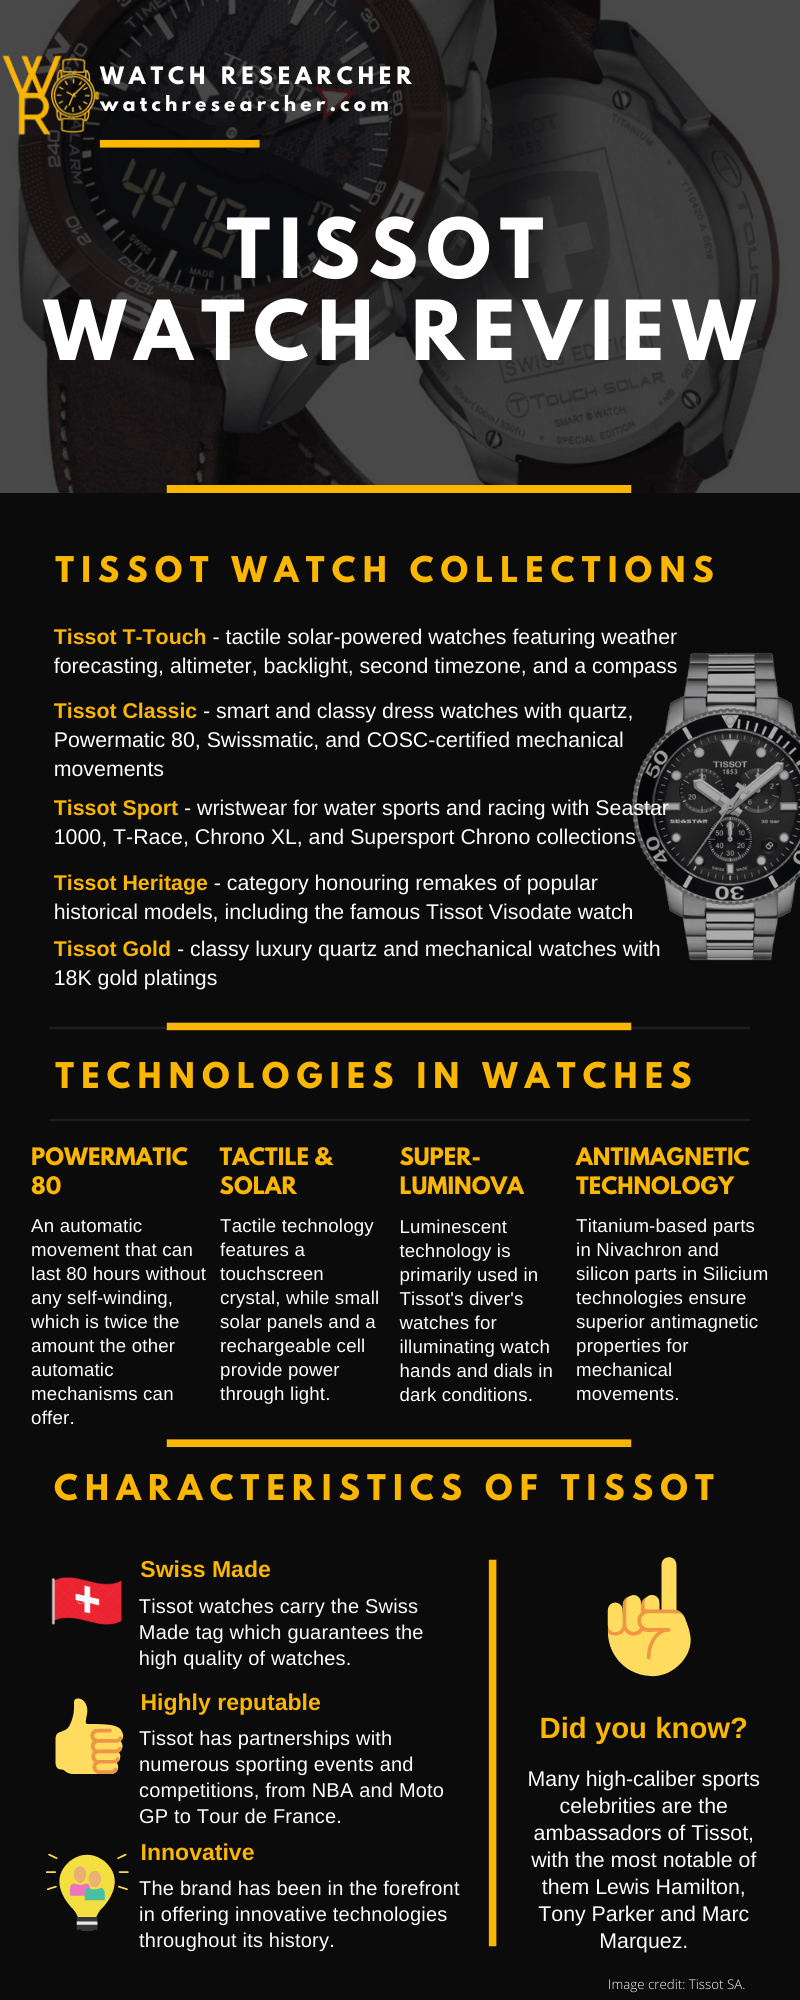 Thorough infographic on Tissot watches